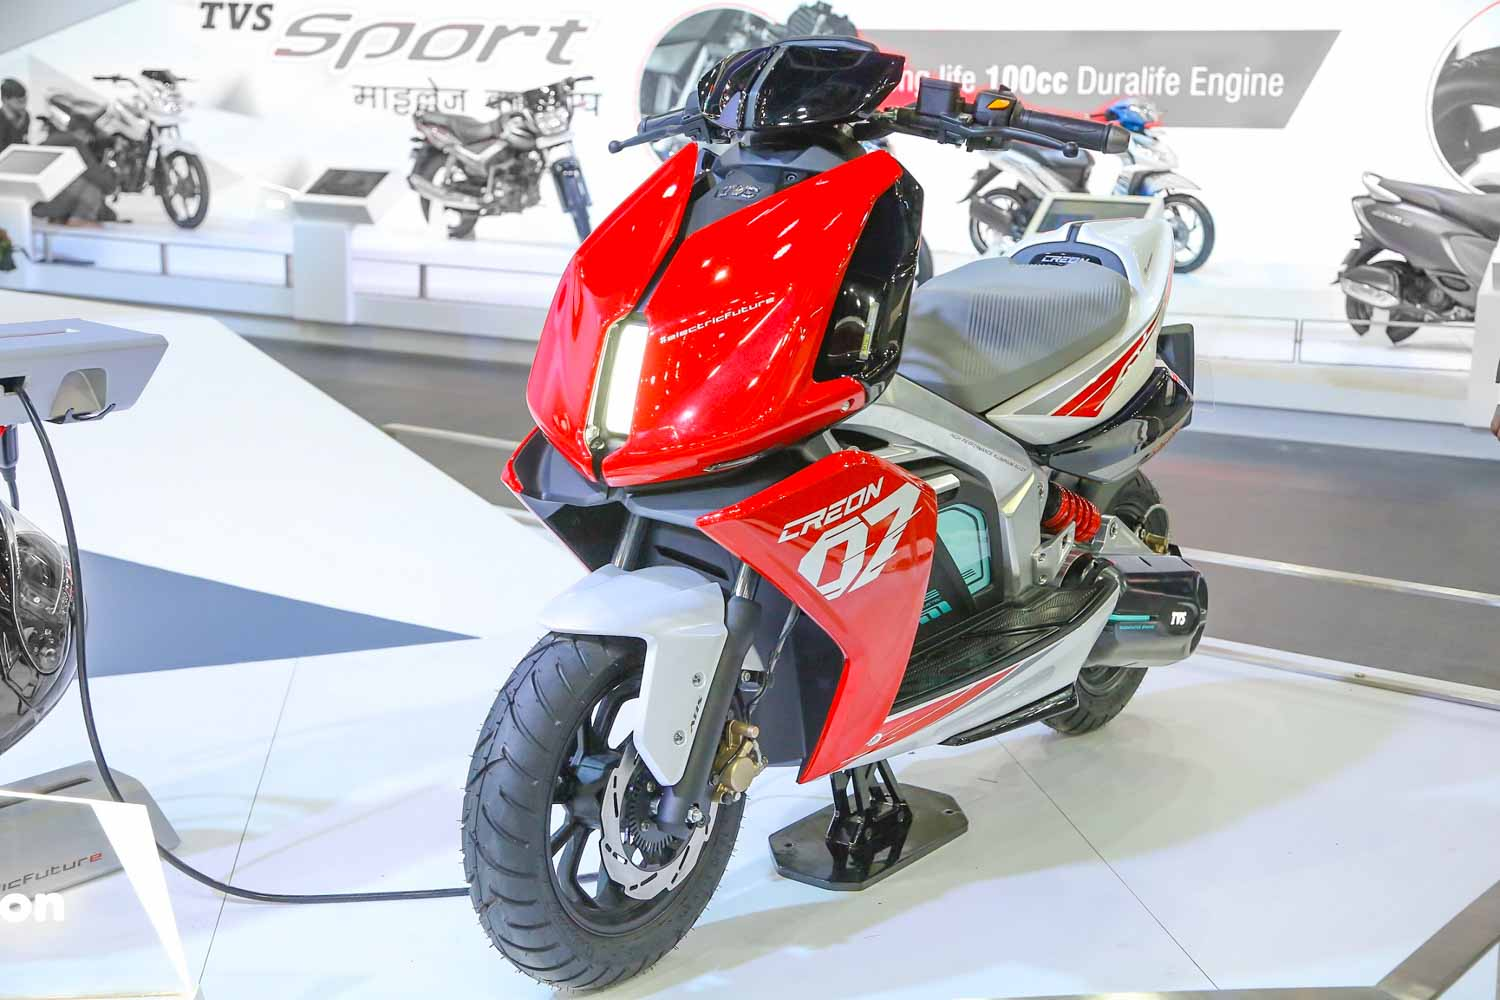 TVS Electric Scooter Teased For The First Time; Could Rival Bajaj Chetak EV - GaadiWaadi.com thumbnail